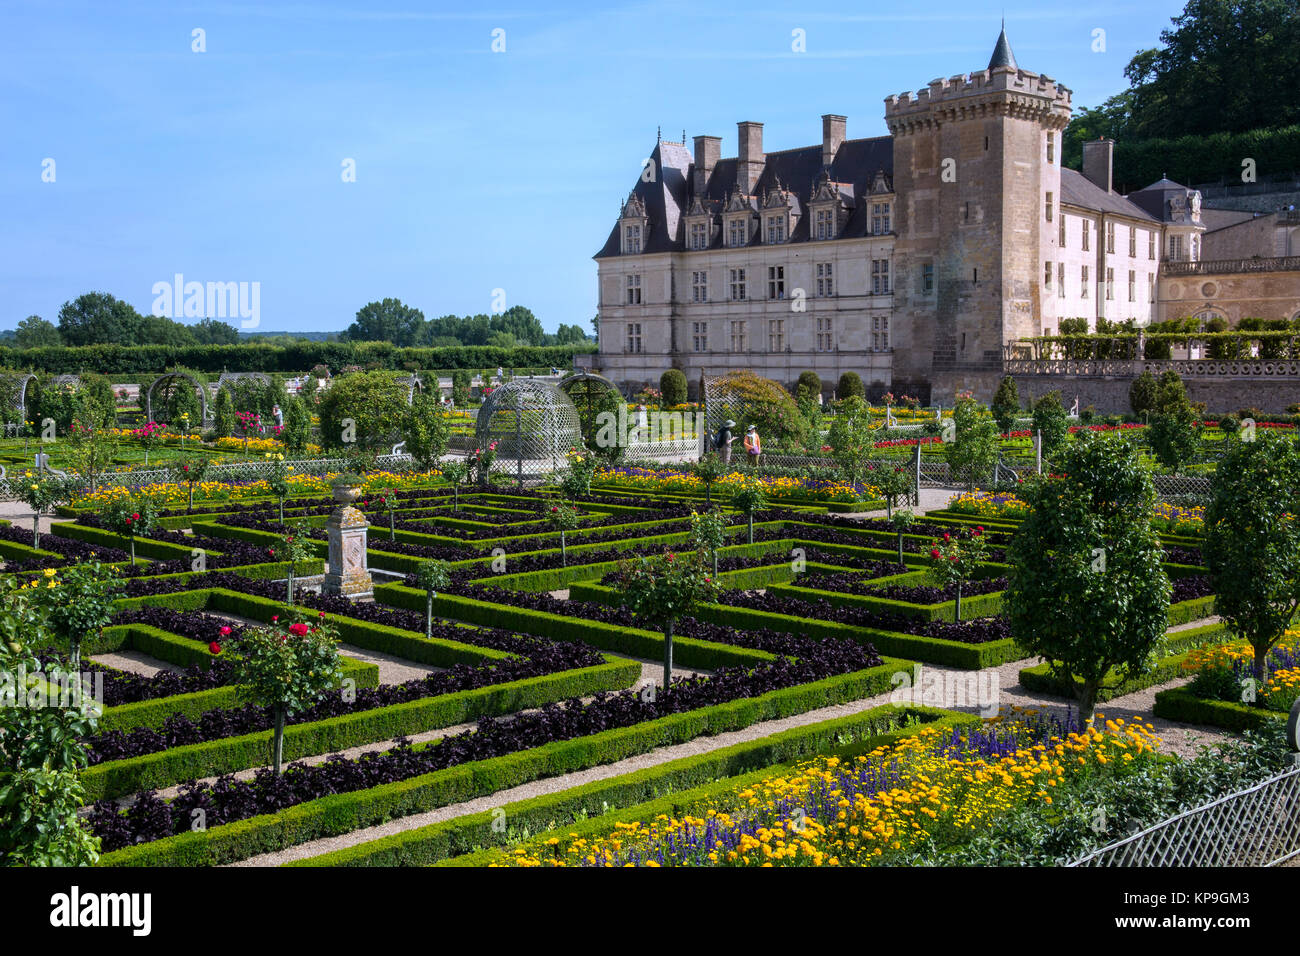 The 16th century chateau and gardens of Villandry in the Loire Valley in France. - Stock Image